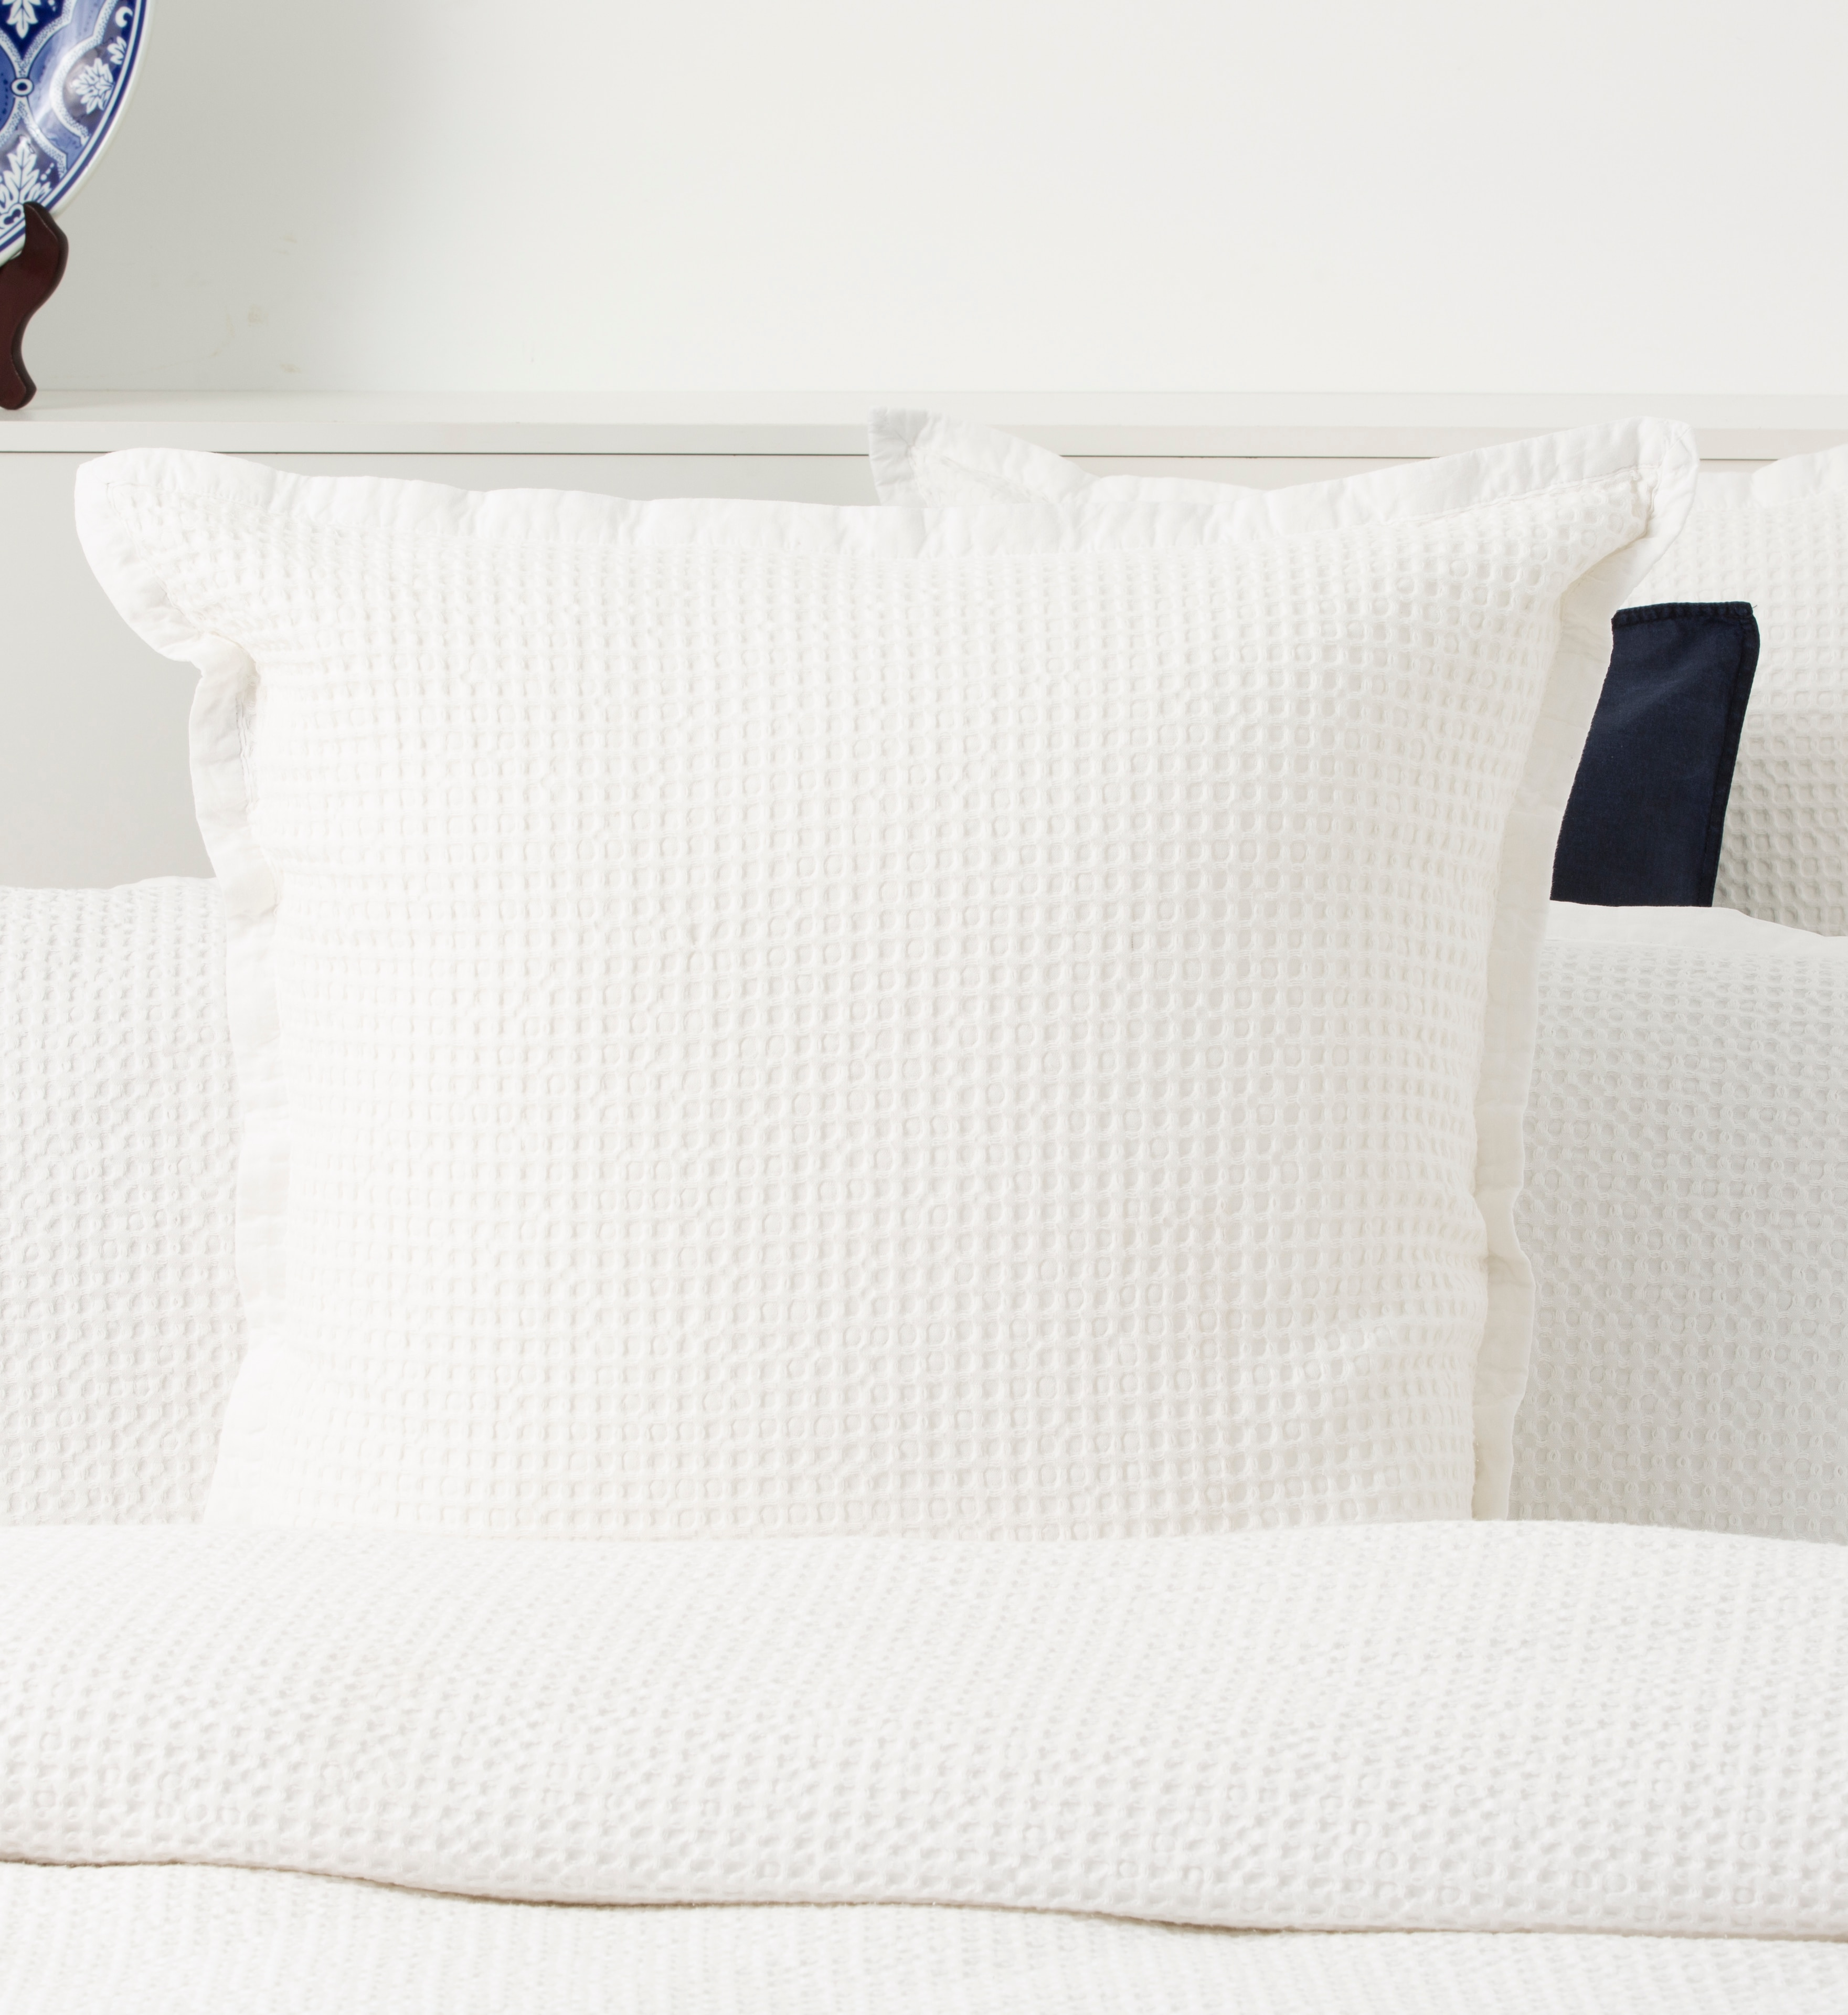 In2linen Waffle Blanket/Coverlette 100% Egyptian Cotton Soft wash |White